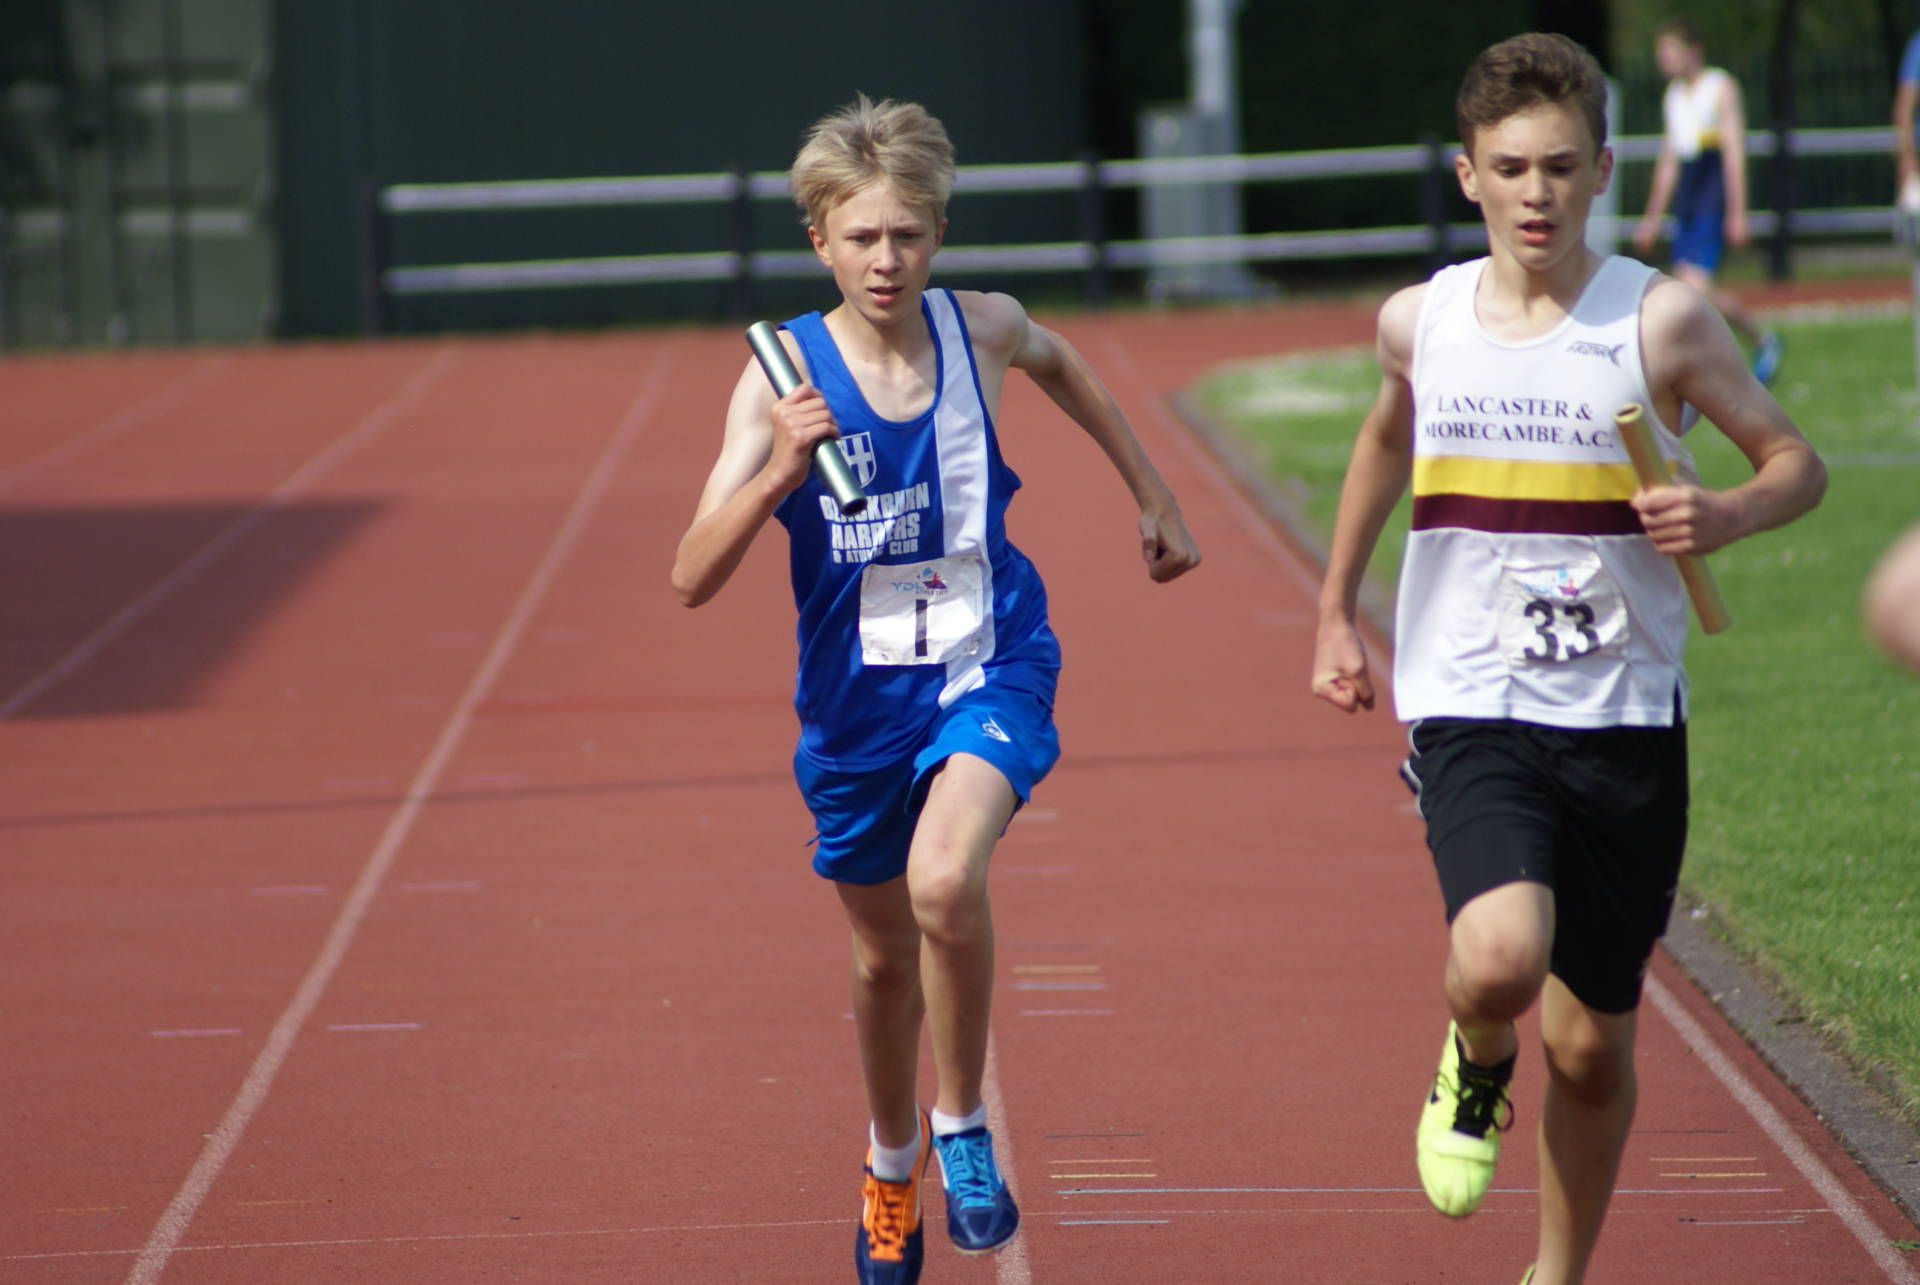 YDL (Lower Age Group) at Trafford – Sunday June 22nd